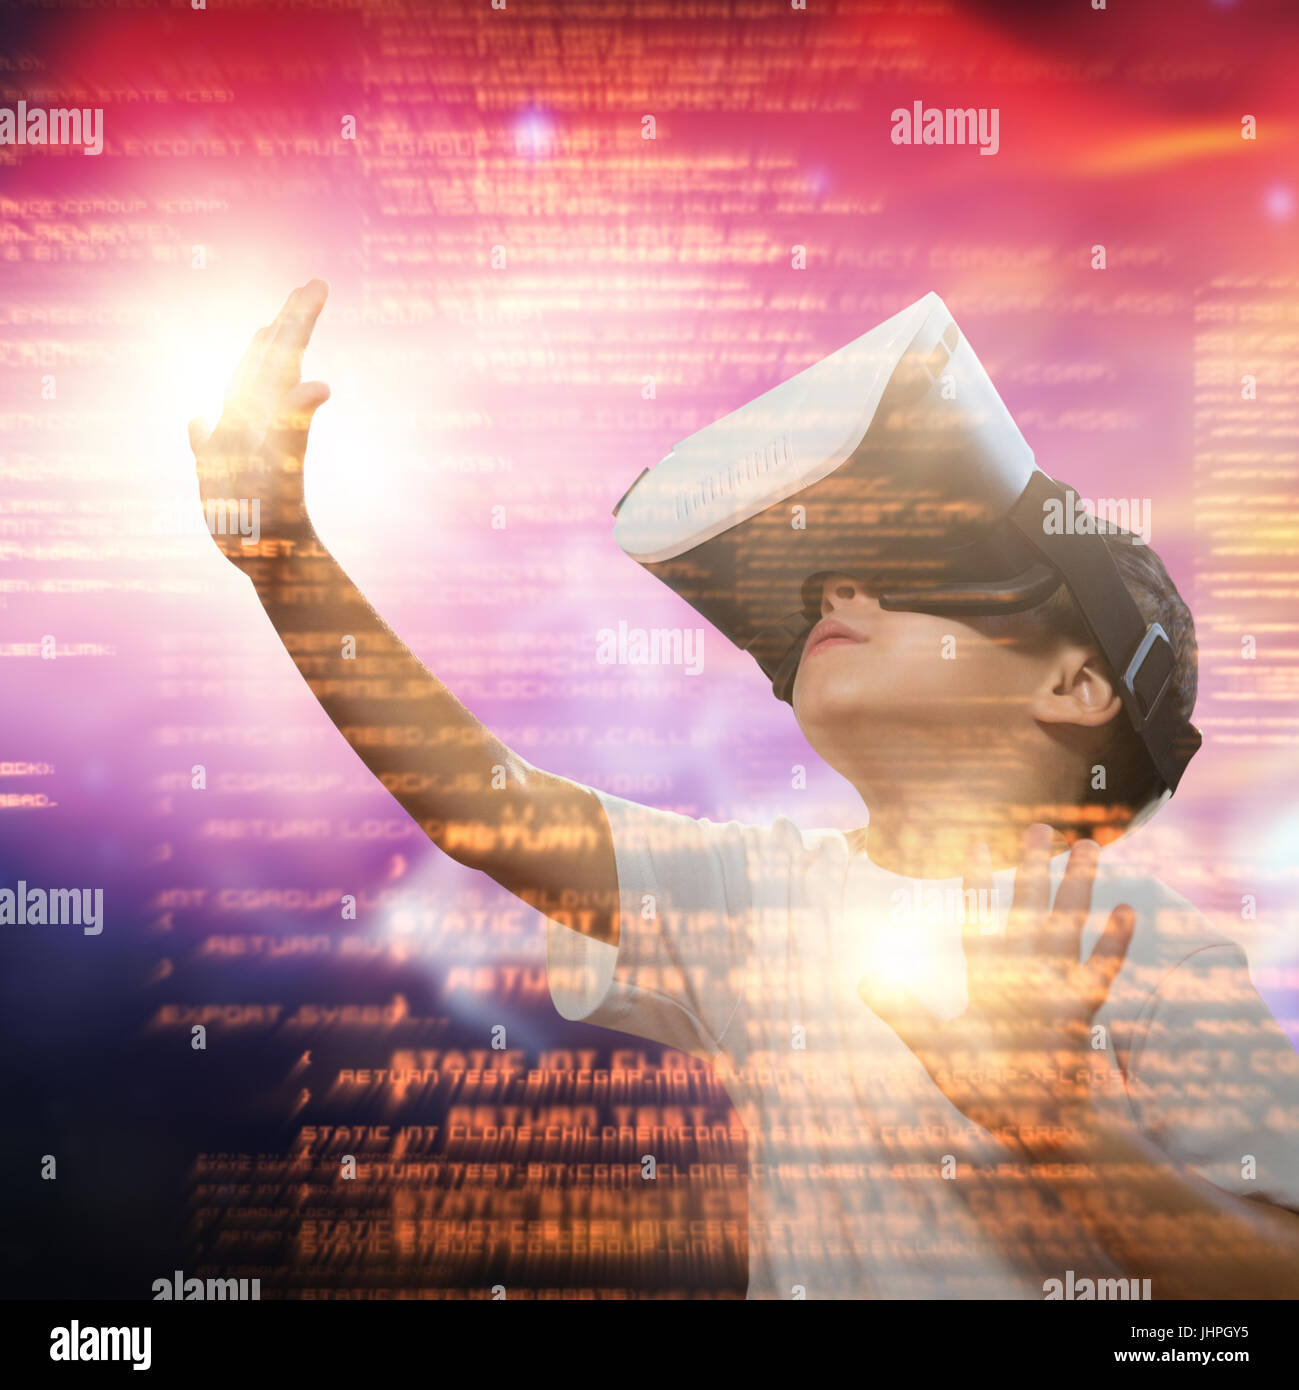 Boy using virtual reality simulator glasses against vector image of illuminated orange light - Stock Image